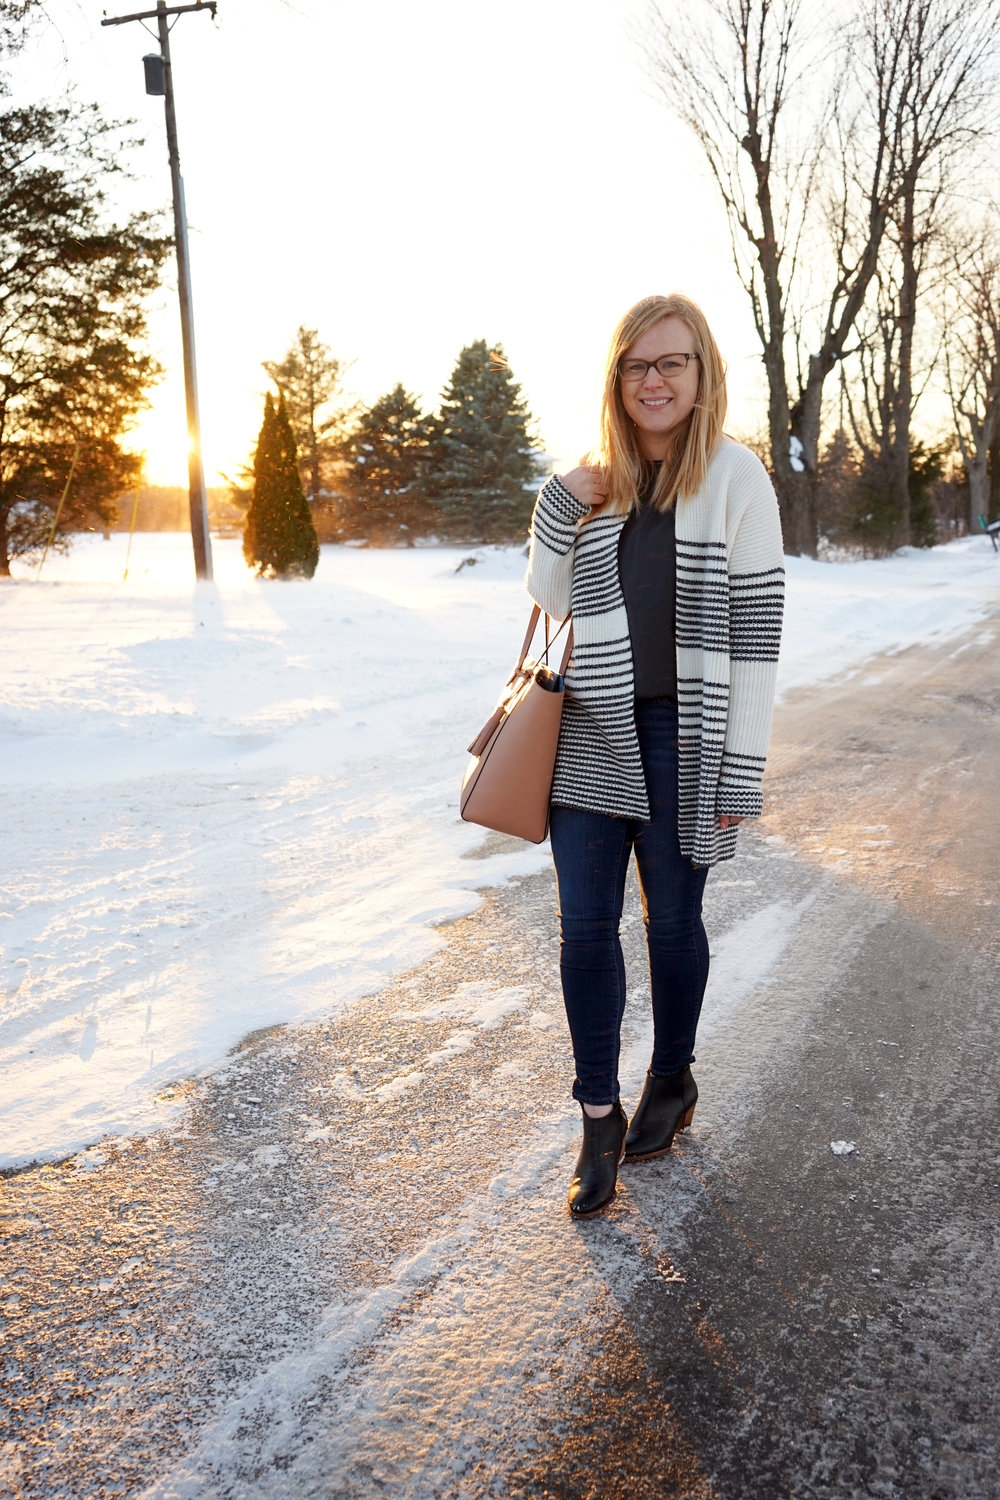 Maggie a la Mode - Gap Merino Wool Blend Gradient Stripe Shaker Cardigan, Theory Melana Modern Georgette Silk Top, Paige Transcend Verdugo Nottingham Jeans, Madewell Billie Boot, Blue Les Copains Tote